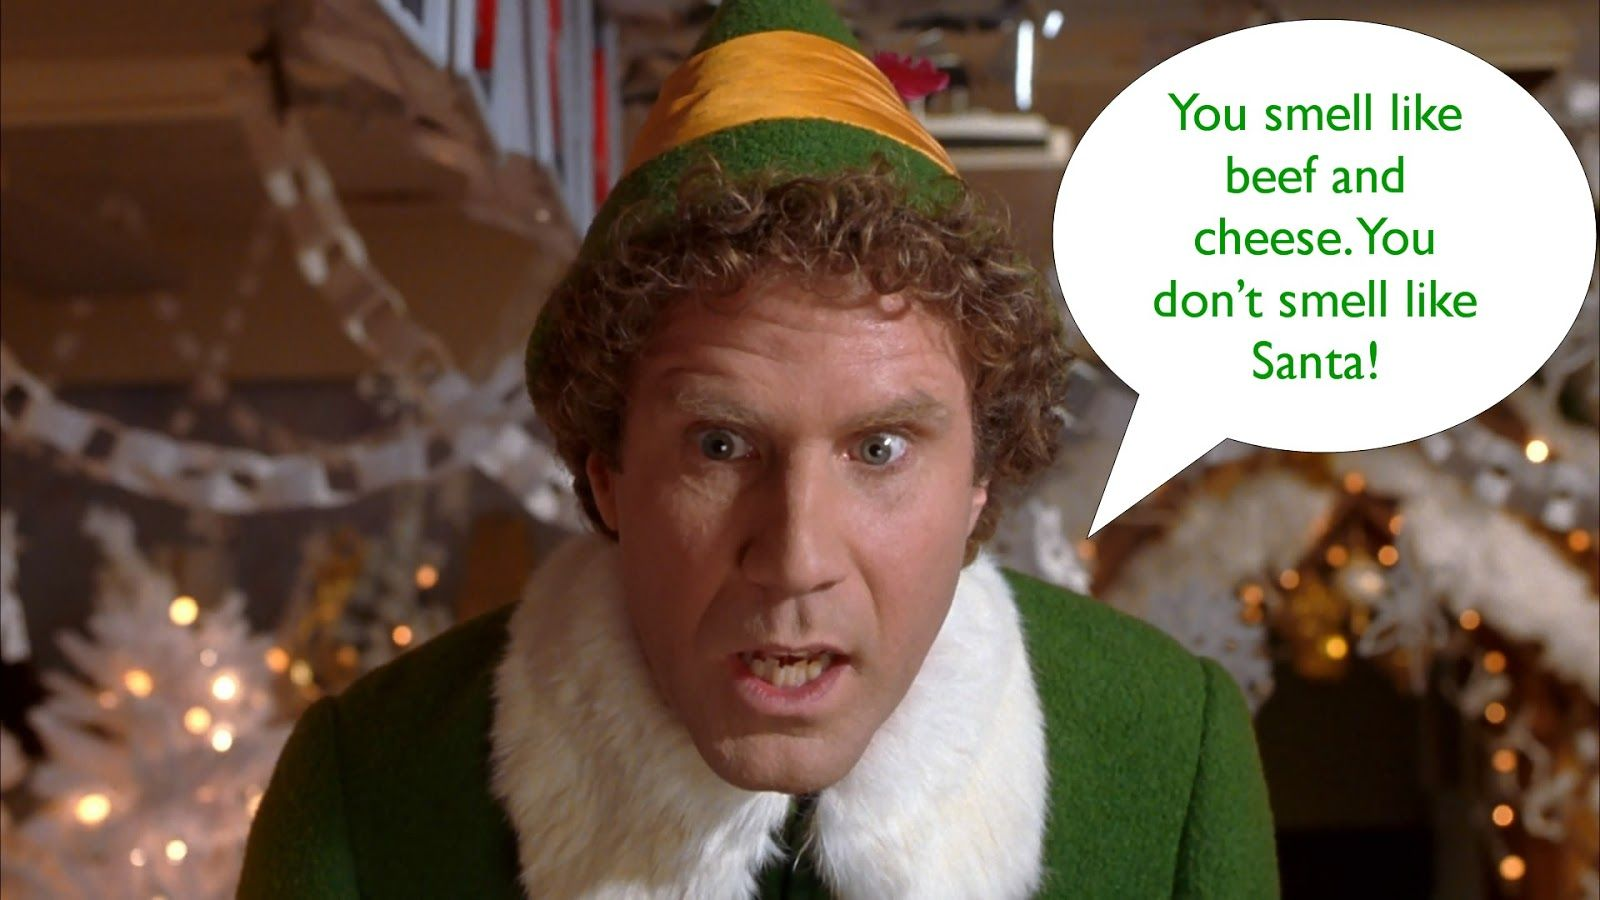 Buddy The Elf 3 Christmas Memes Just For Laughs Buddy The Elf